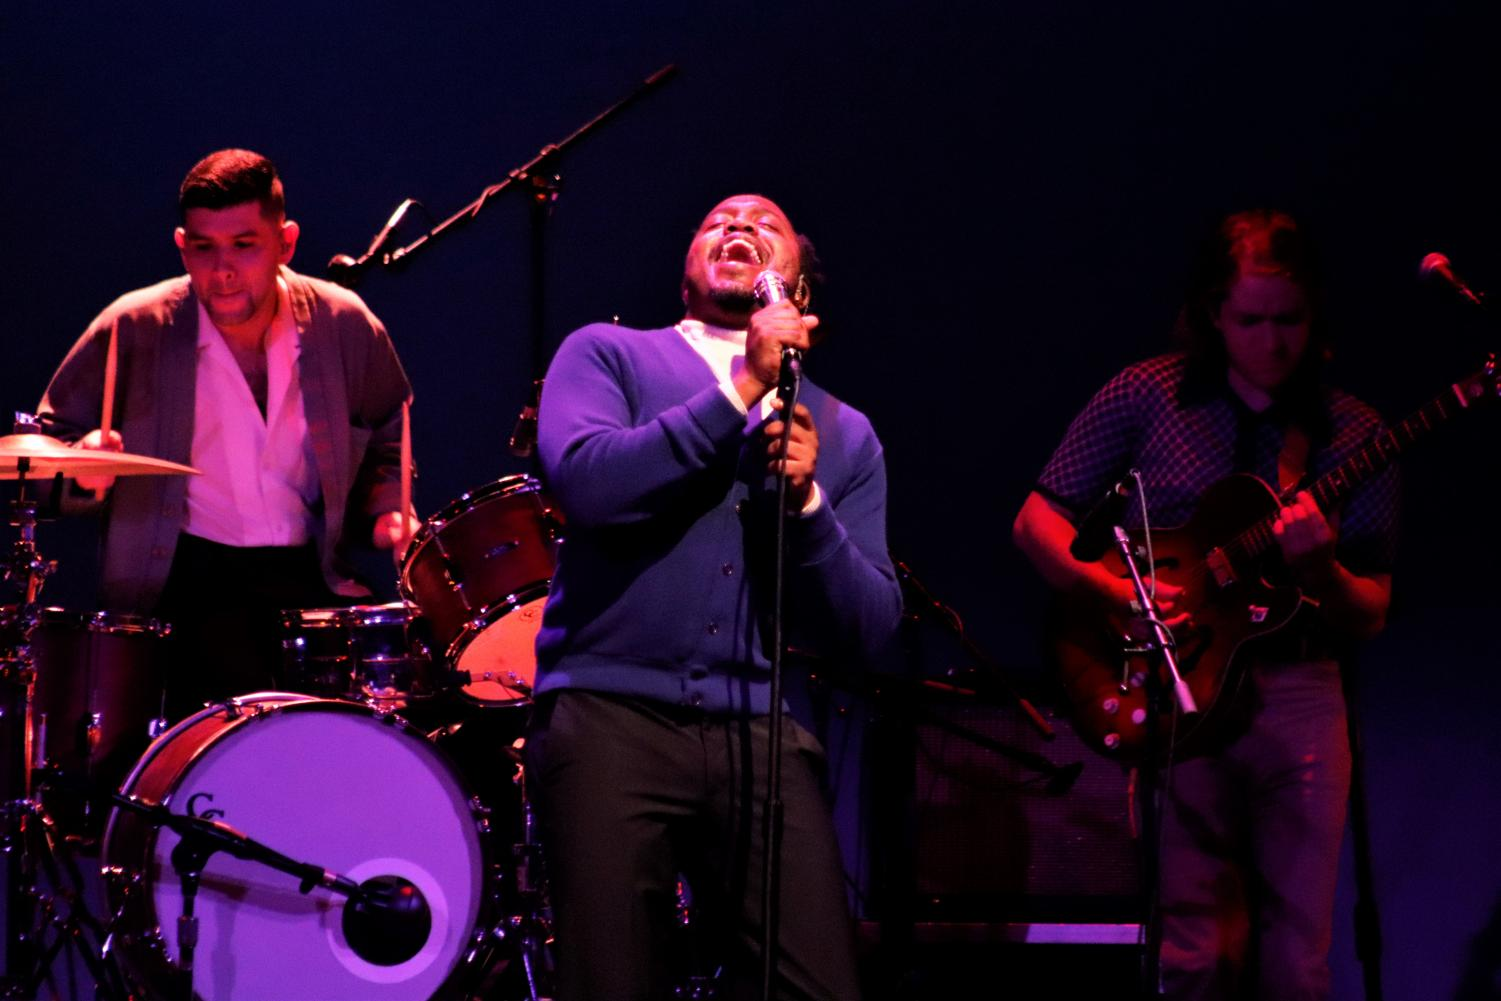 Durand Jones performed at the Columbia Theatre with his band, Durand Jones and the Indications, shortly after returning from an international tour.